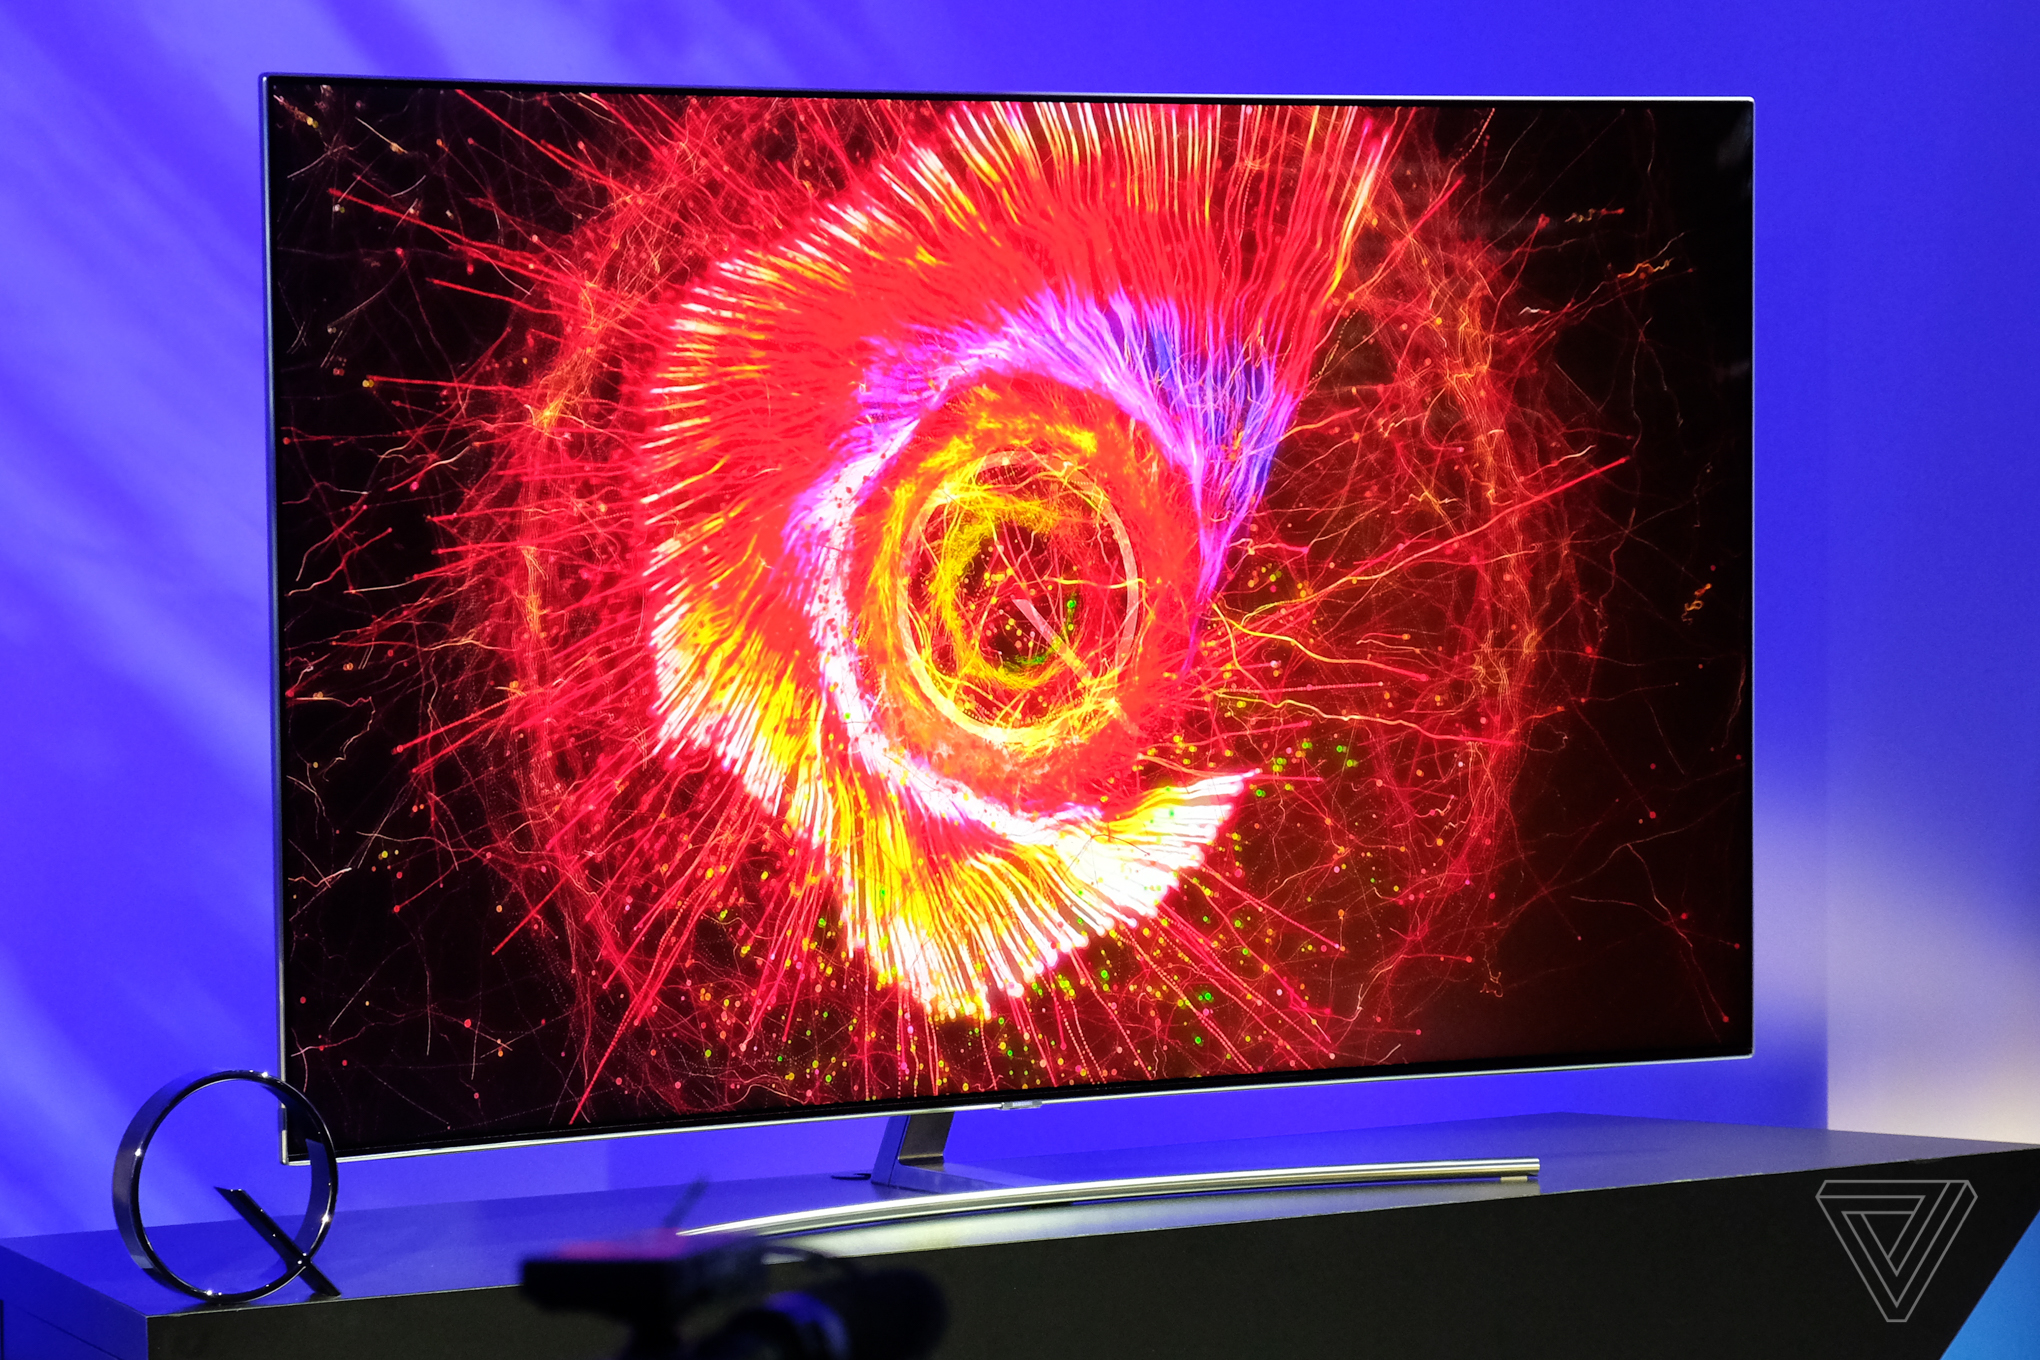 samsung says its new qled tvs are better than oled tvs the verge. Black Bedroom Furniture Sets. Home Design Ideas